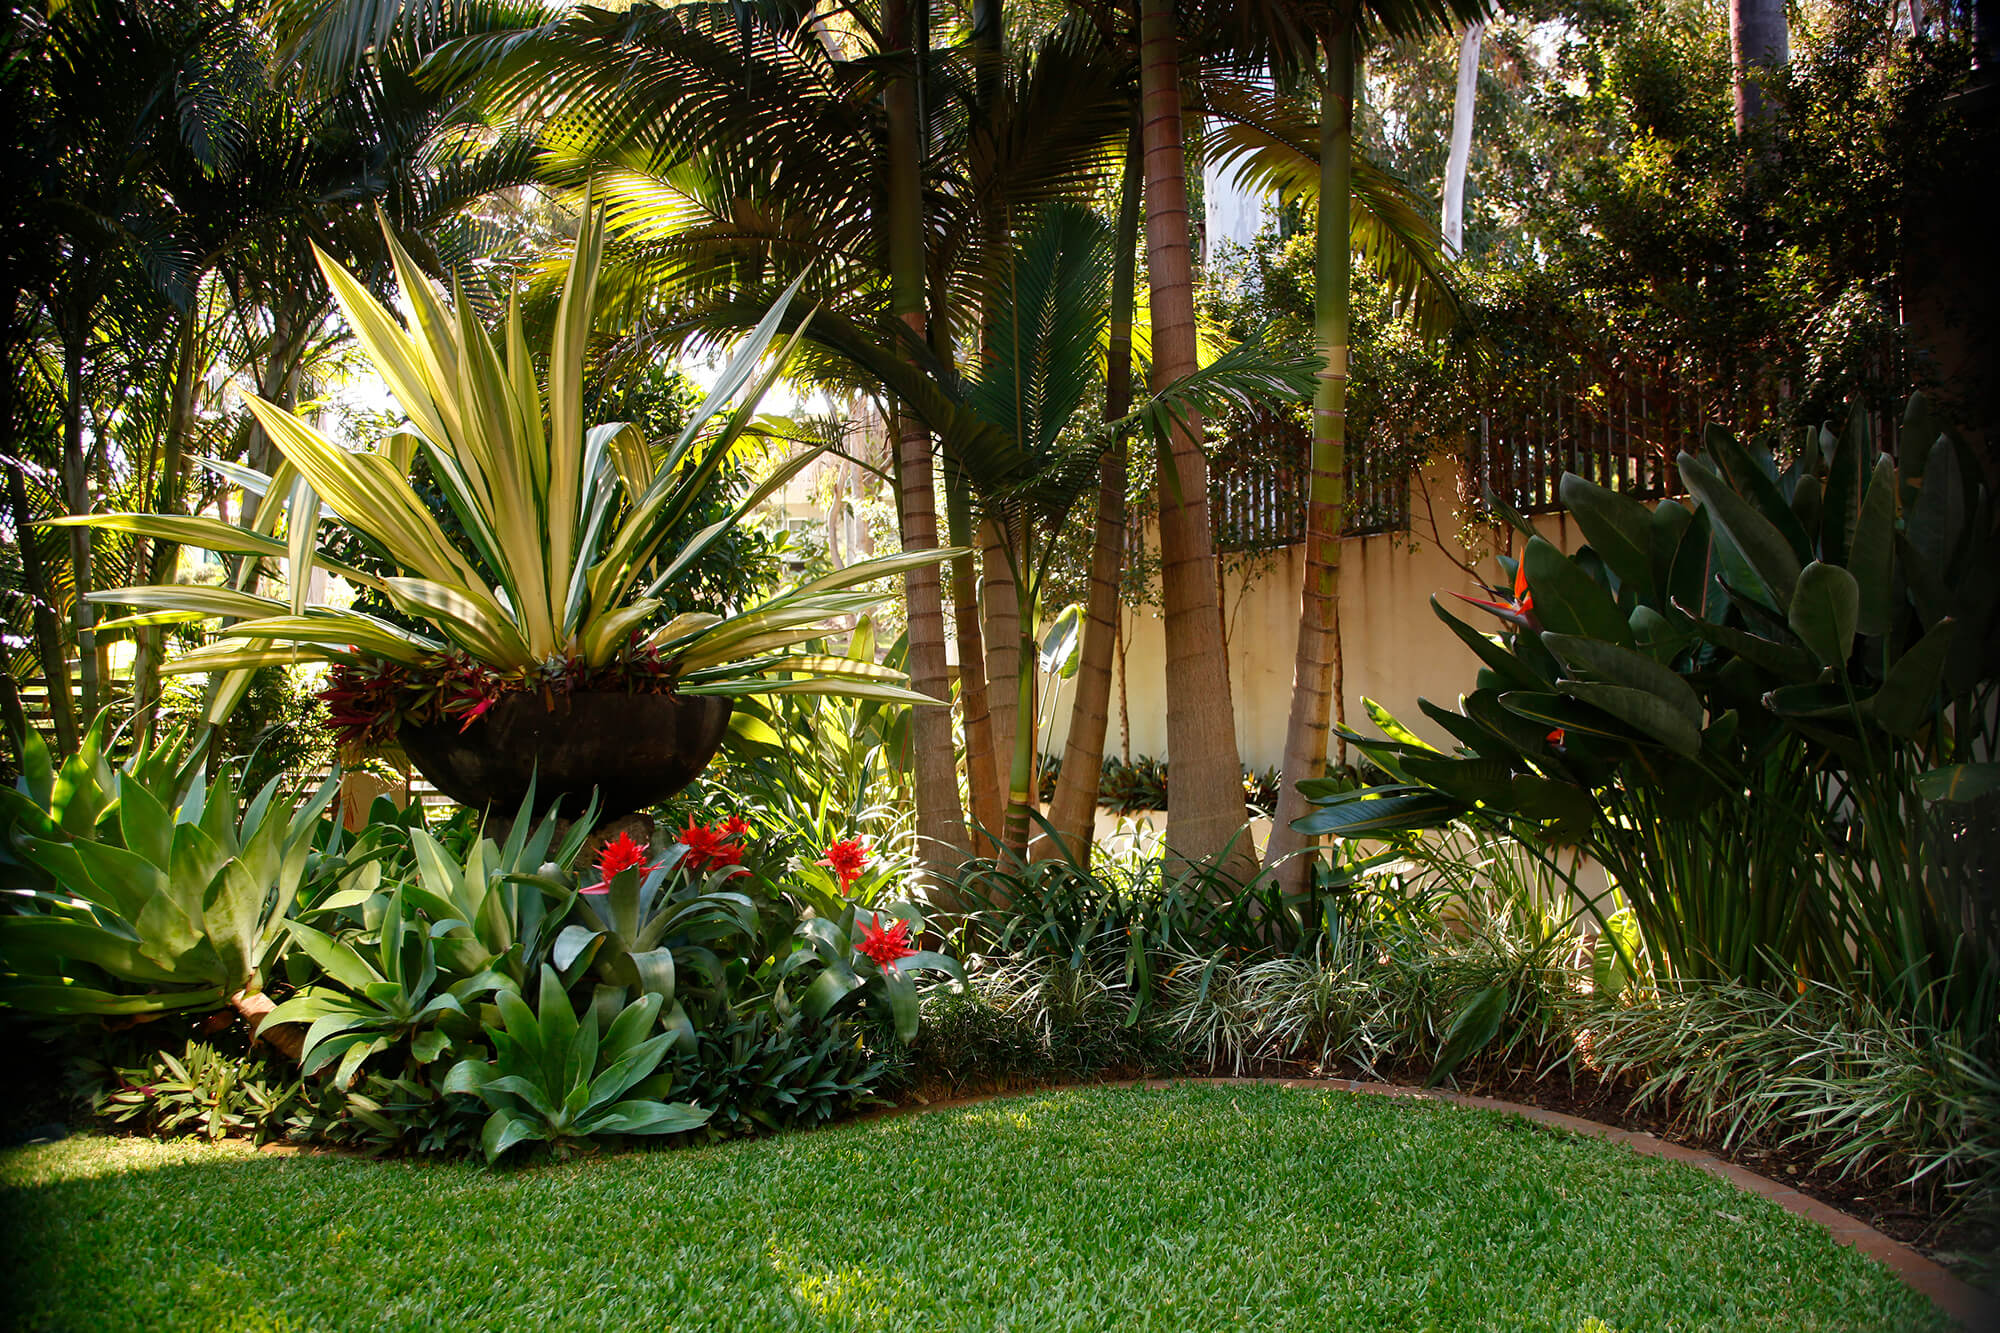 Tropical garden coorparoo boss gardenscapes for Qld garden design ideas